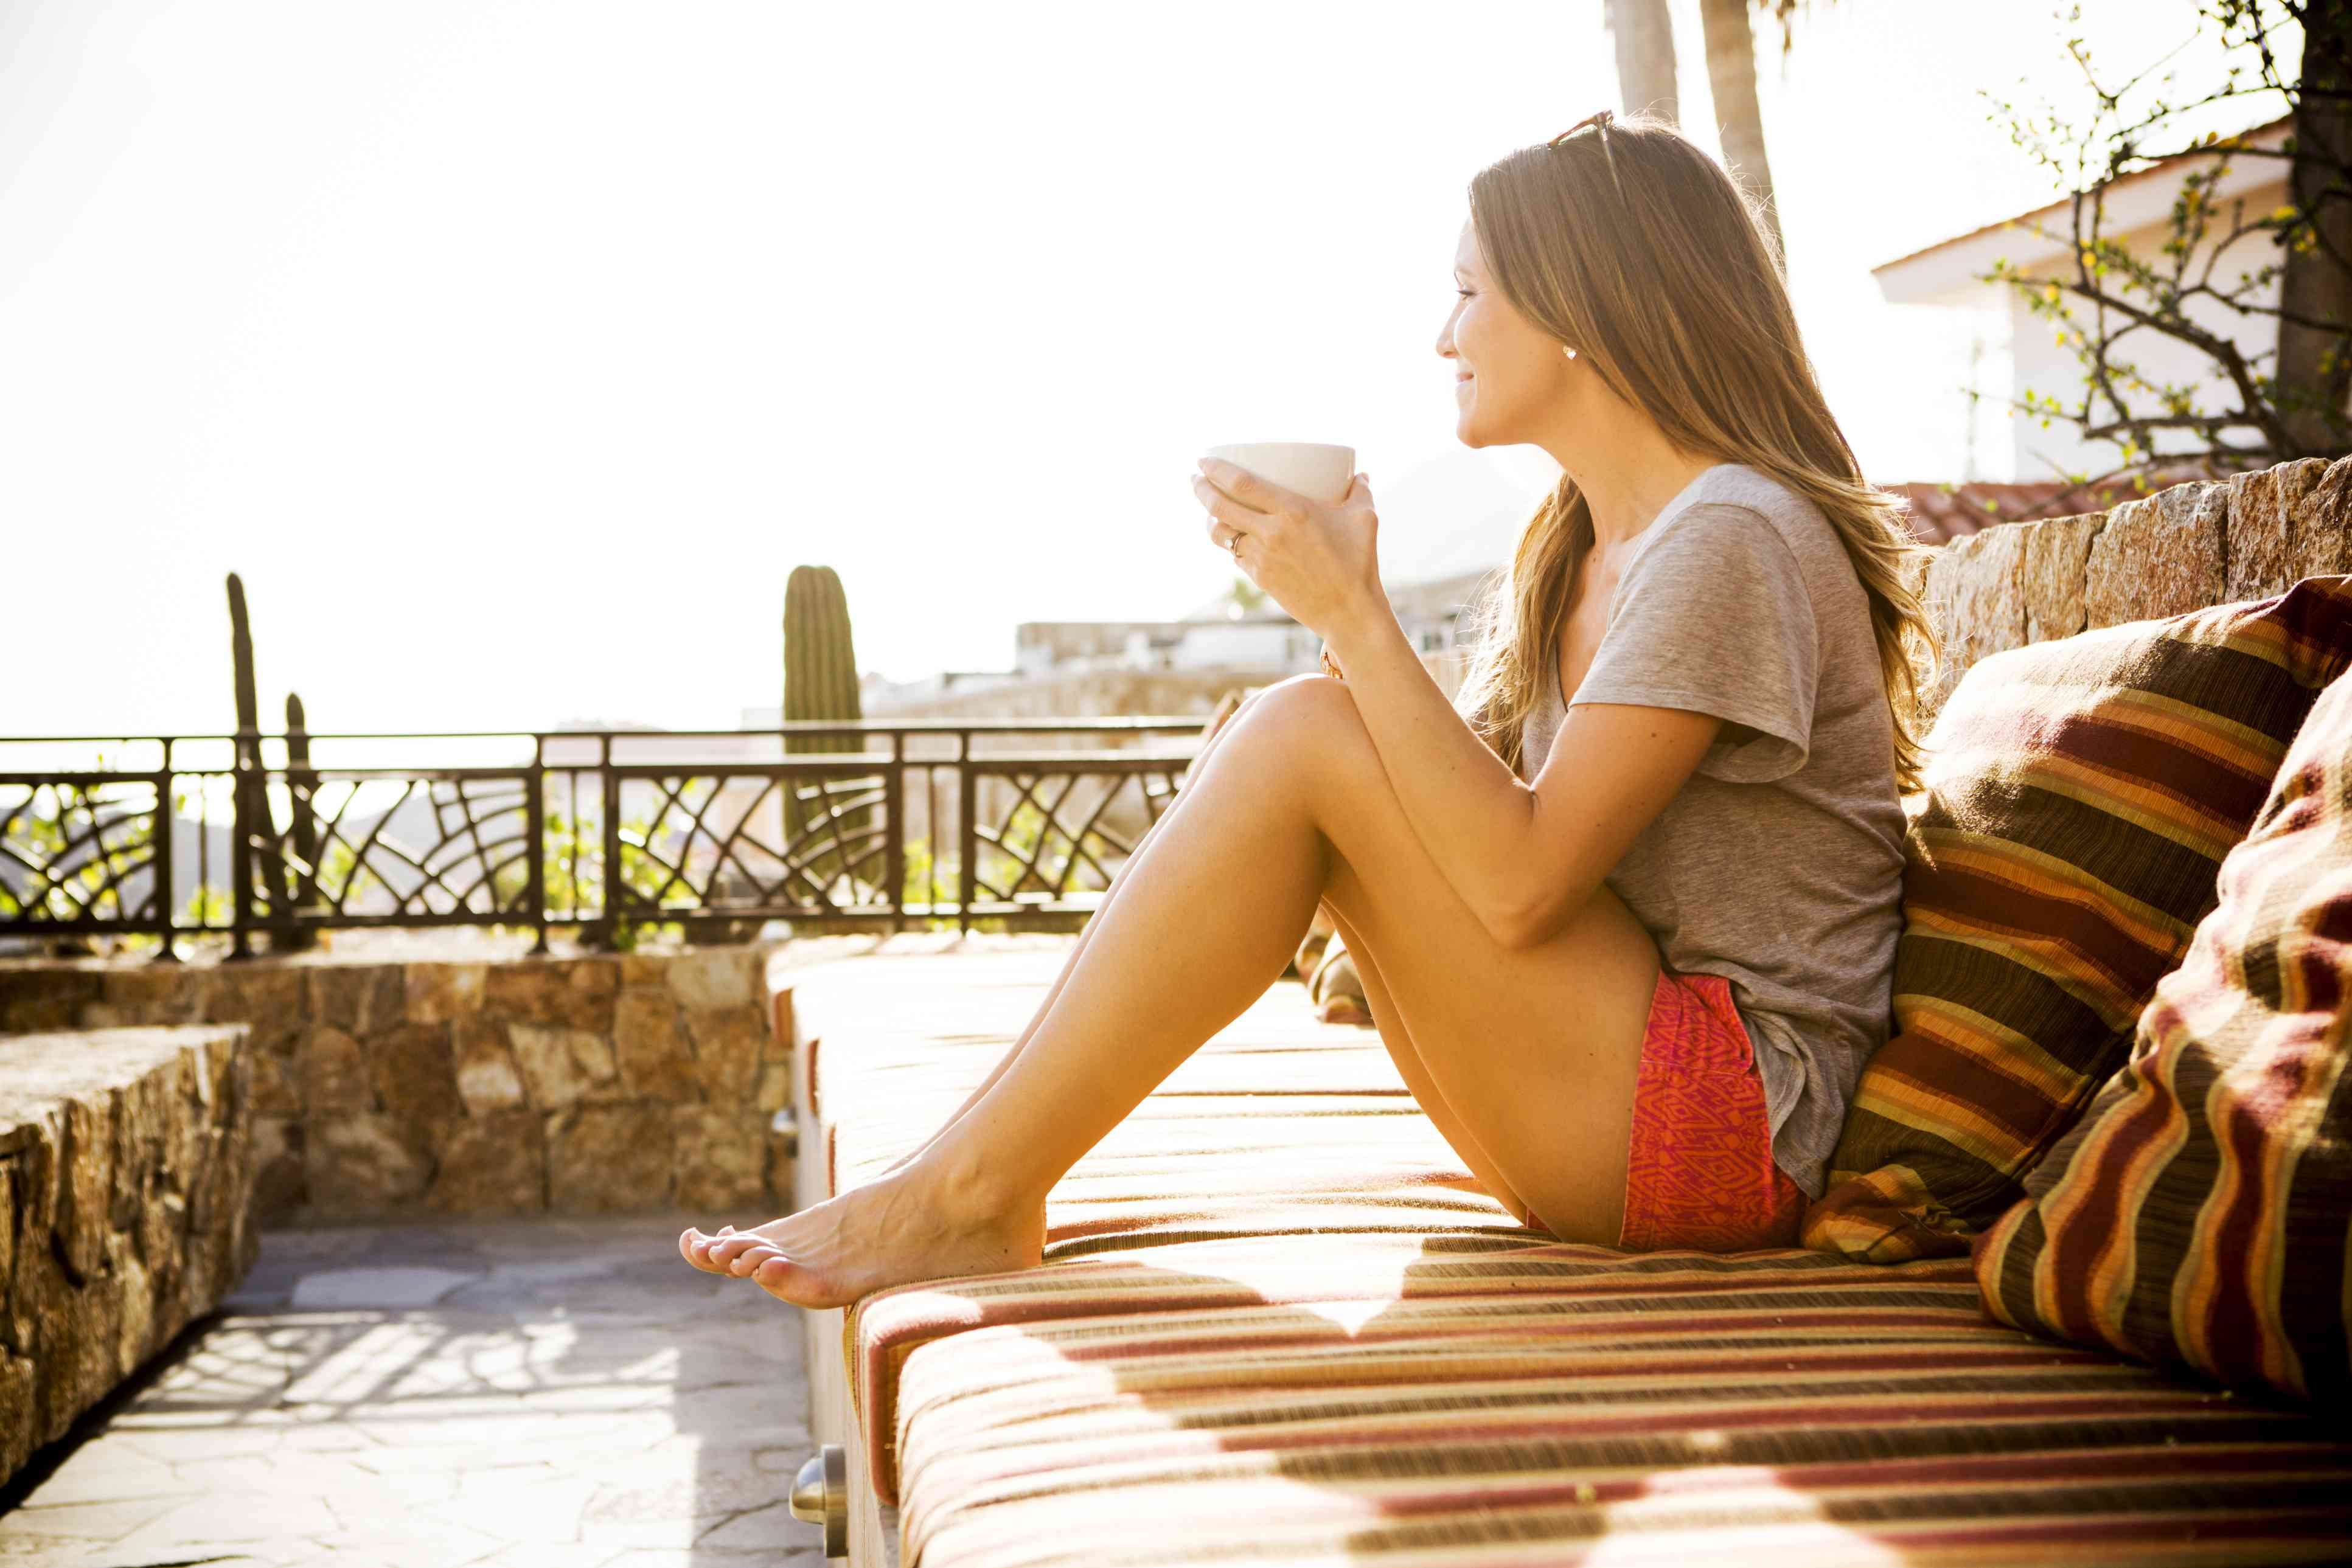 A woman sitting alone on an outdoor couch